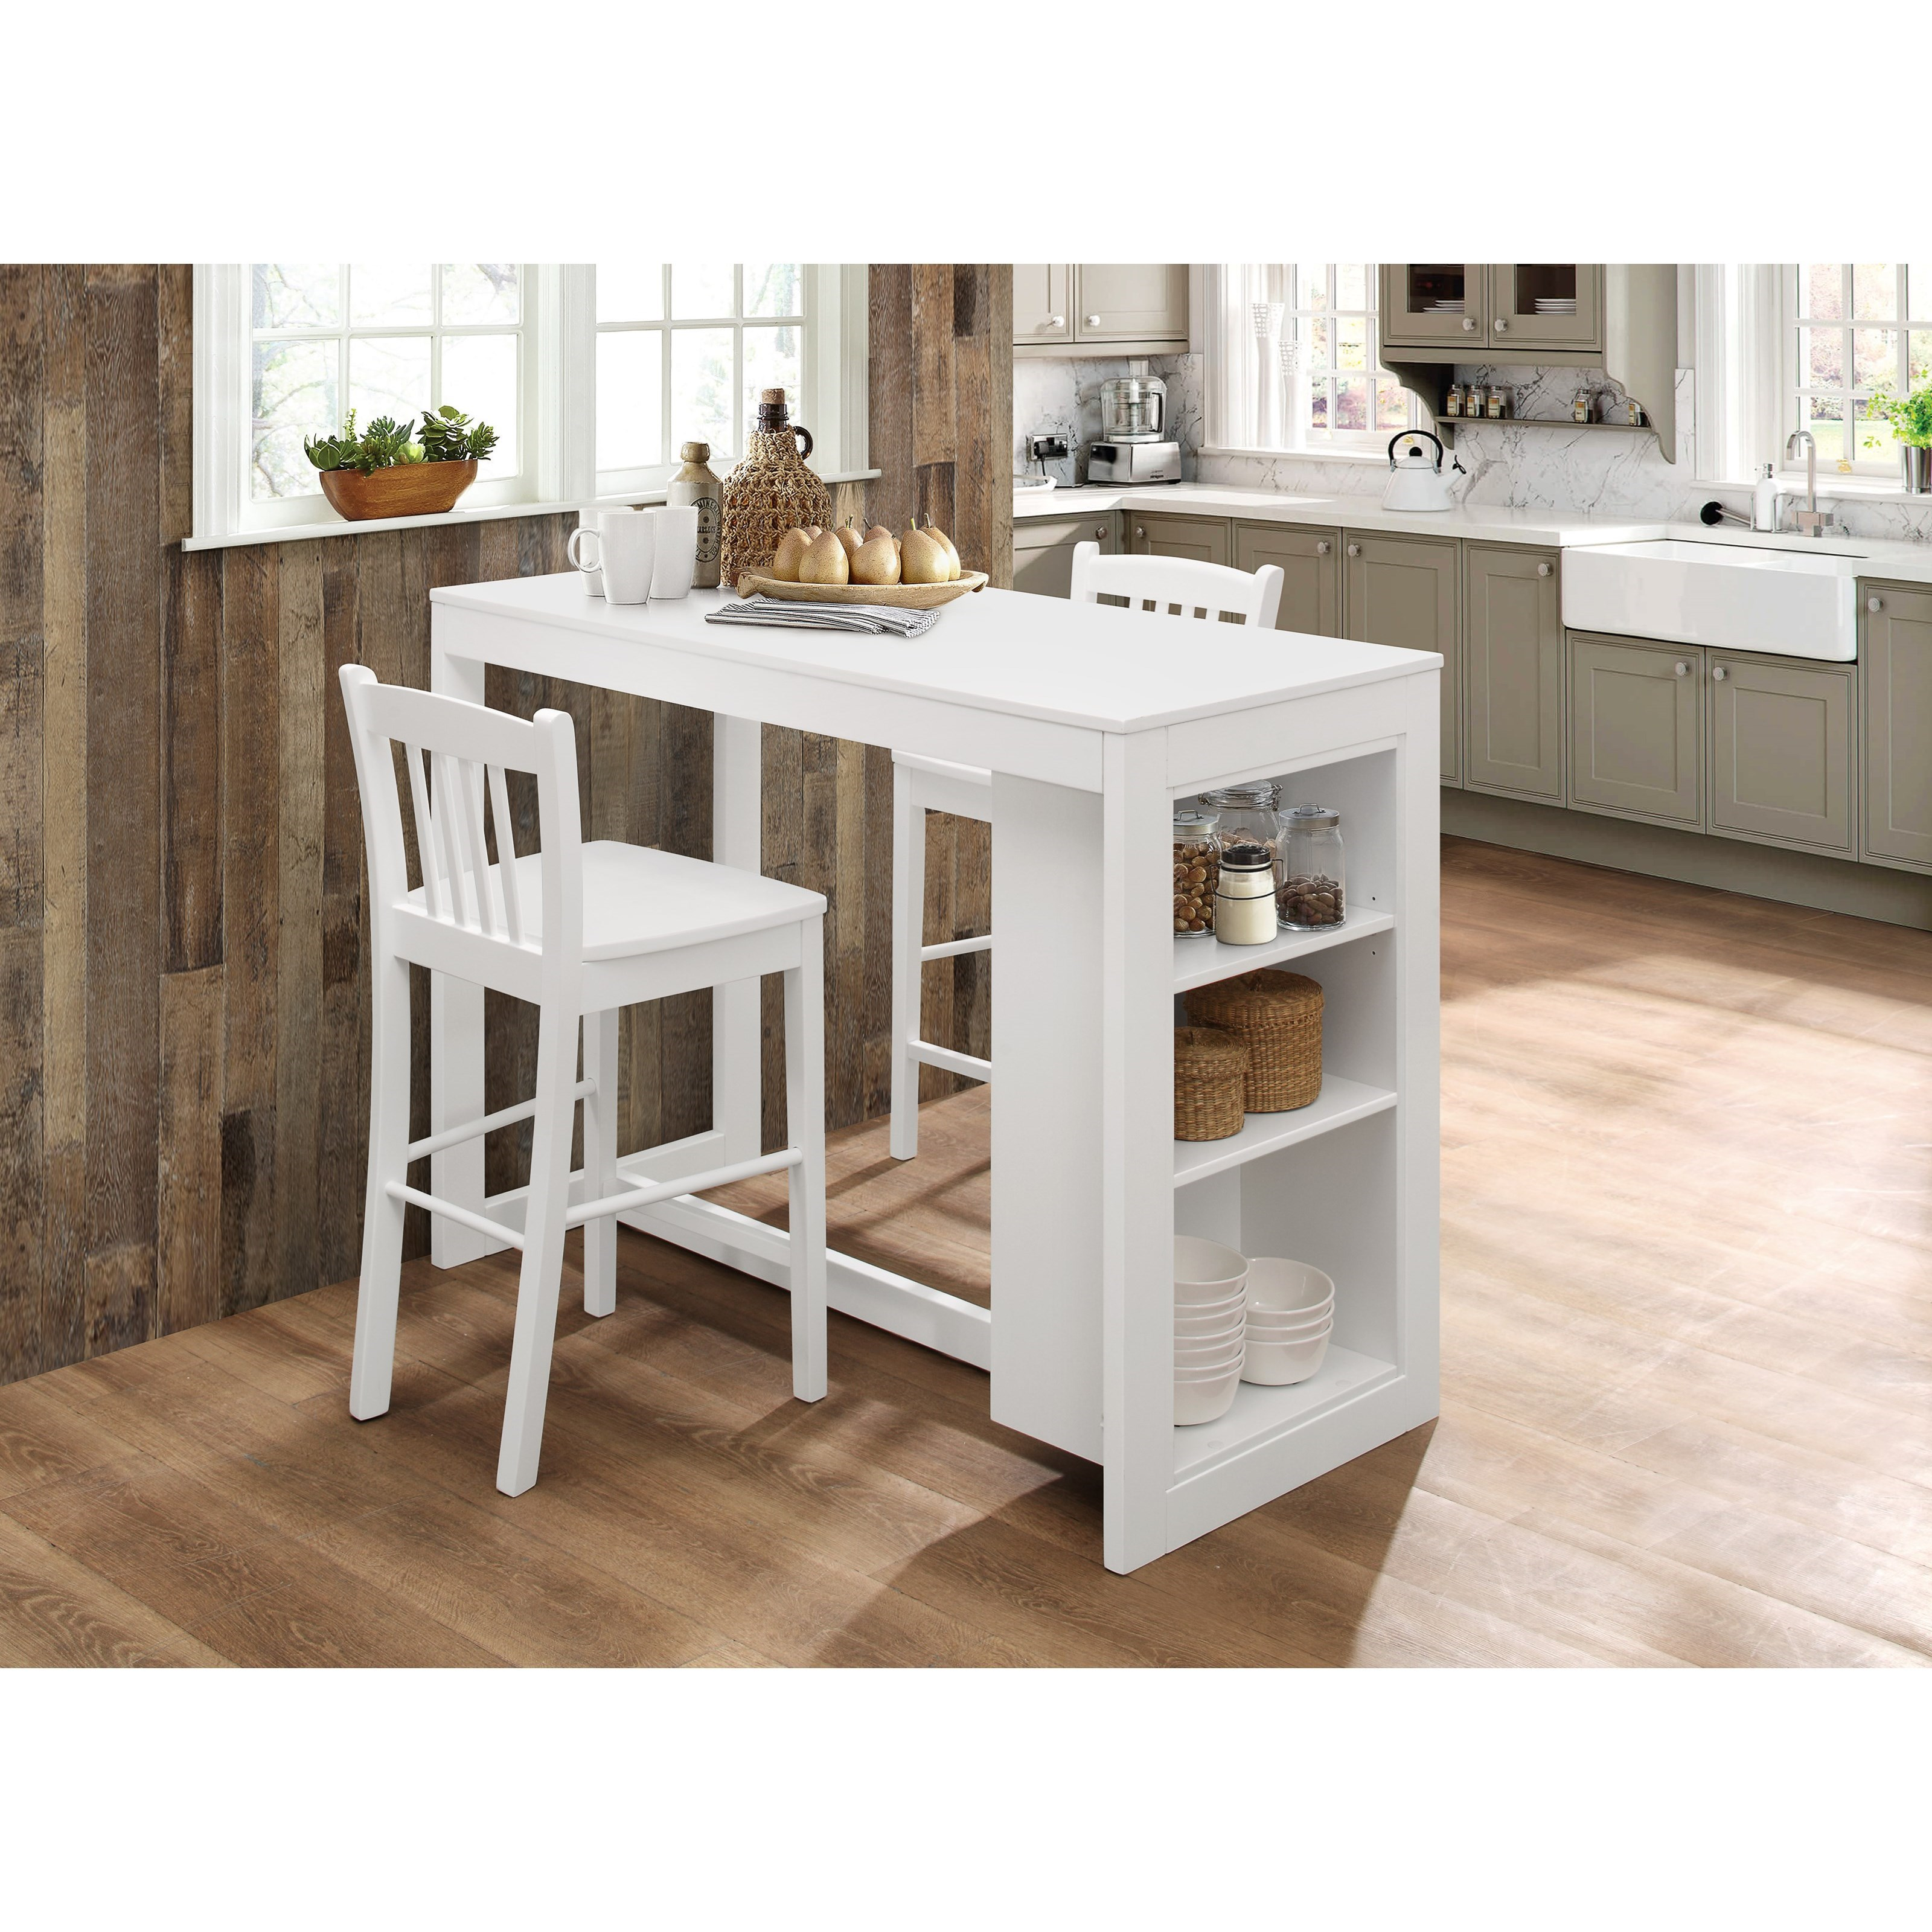 Counter Height Table with 2 Chairs